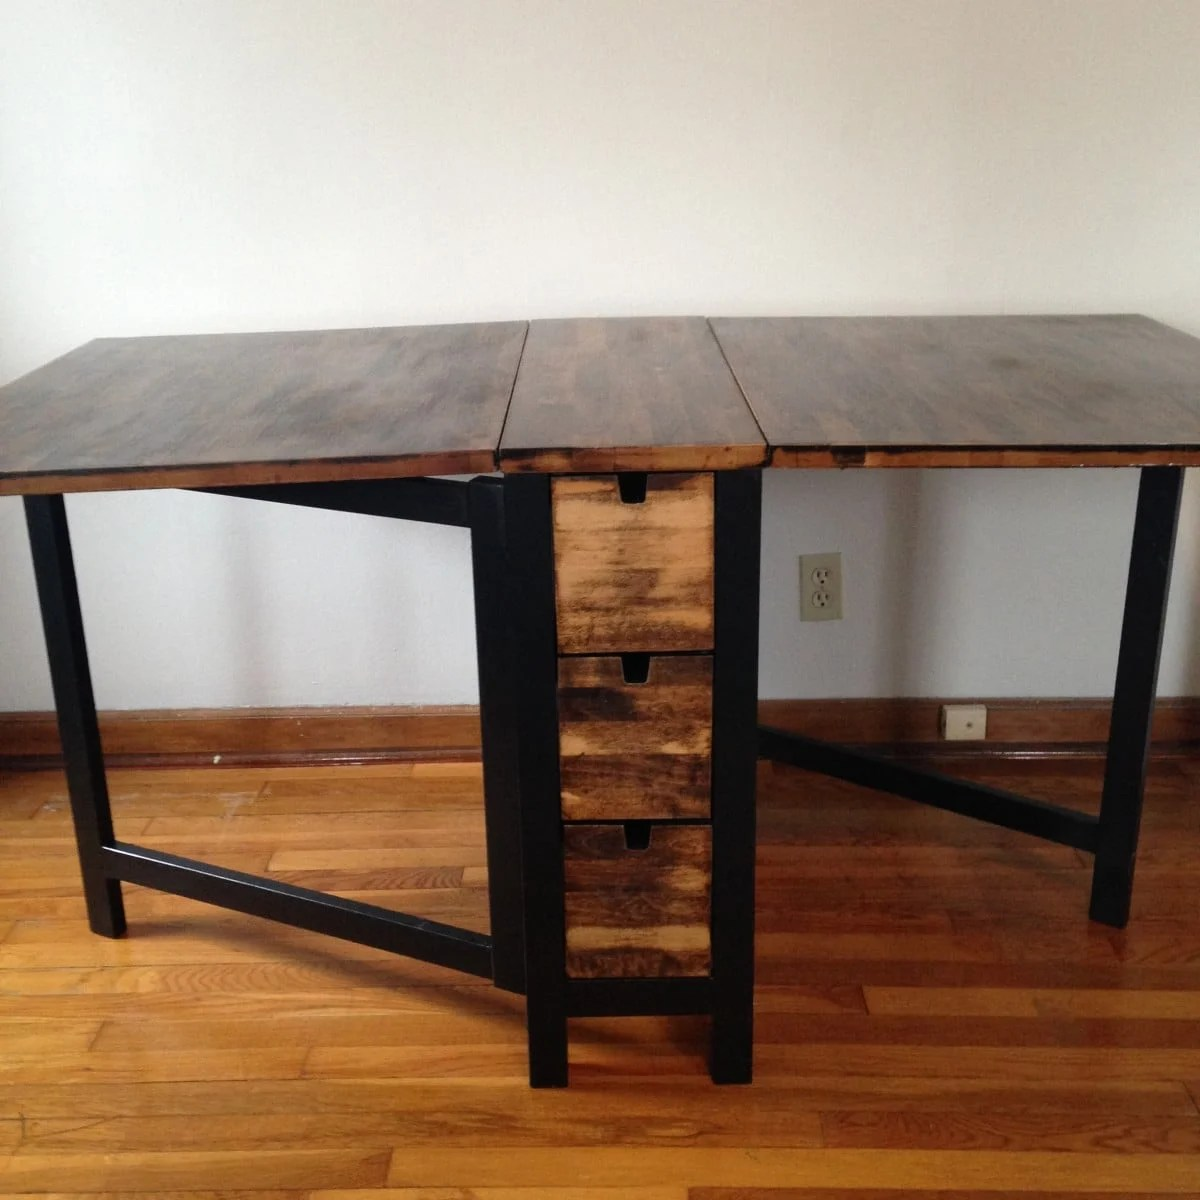 ikea norden table ikea norden gateleg table goes ikea hackers 11341